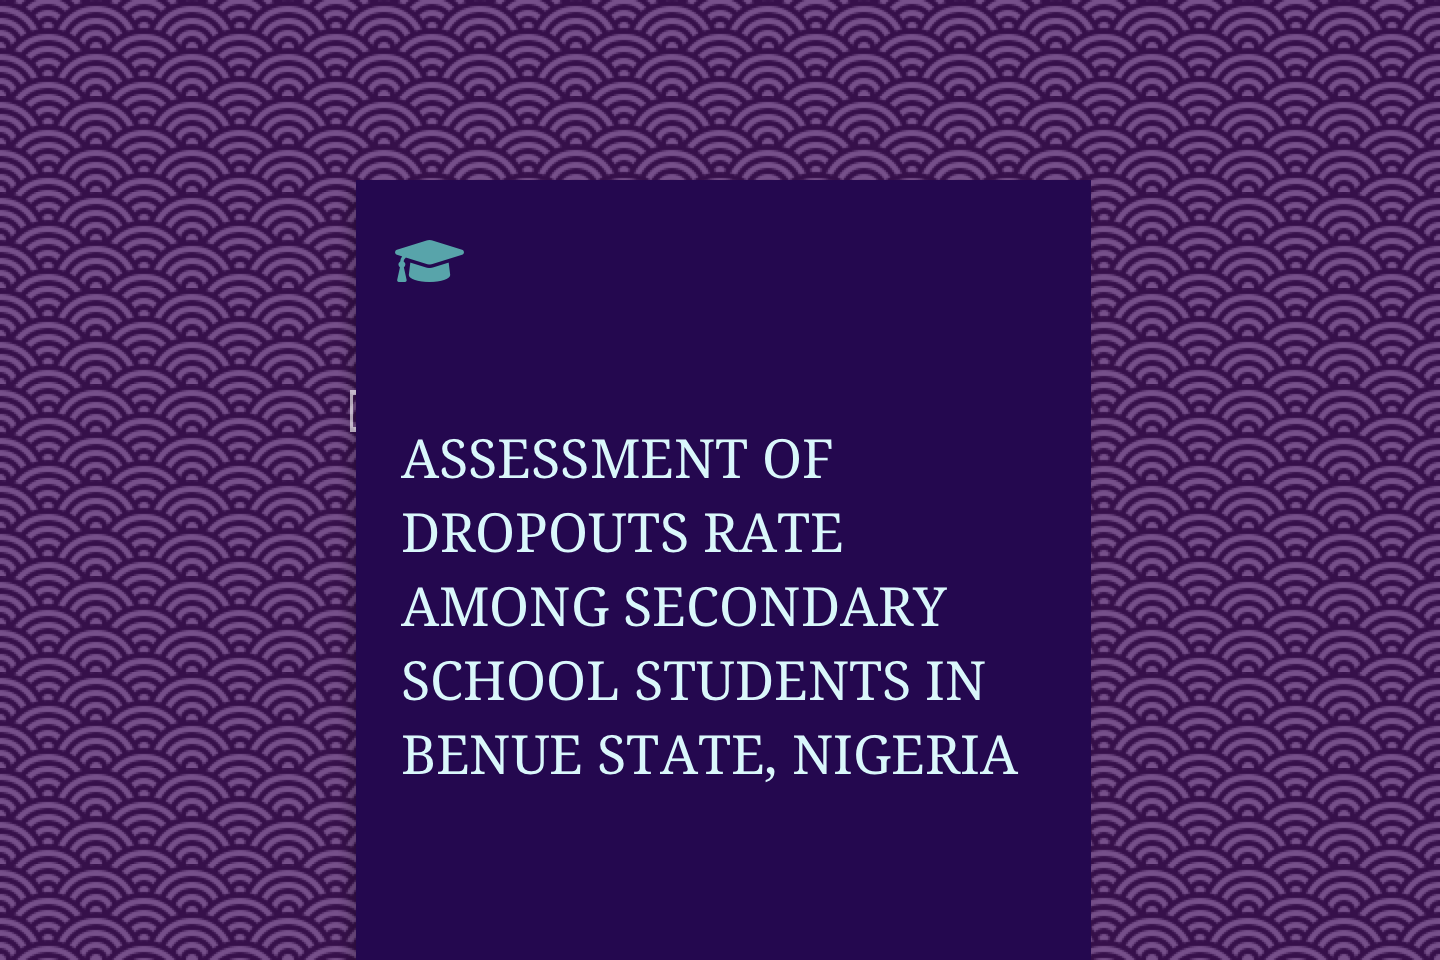 ASSESSMENT OF DROPOUTS RATE AMONG SECONDARY SCHOOL STUDENTS IN BENUE STATE, NIGERIA